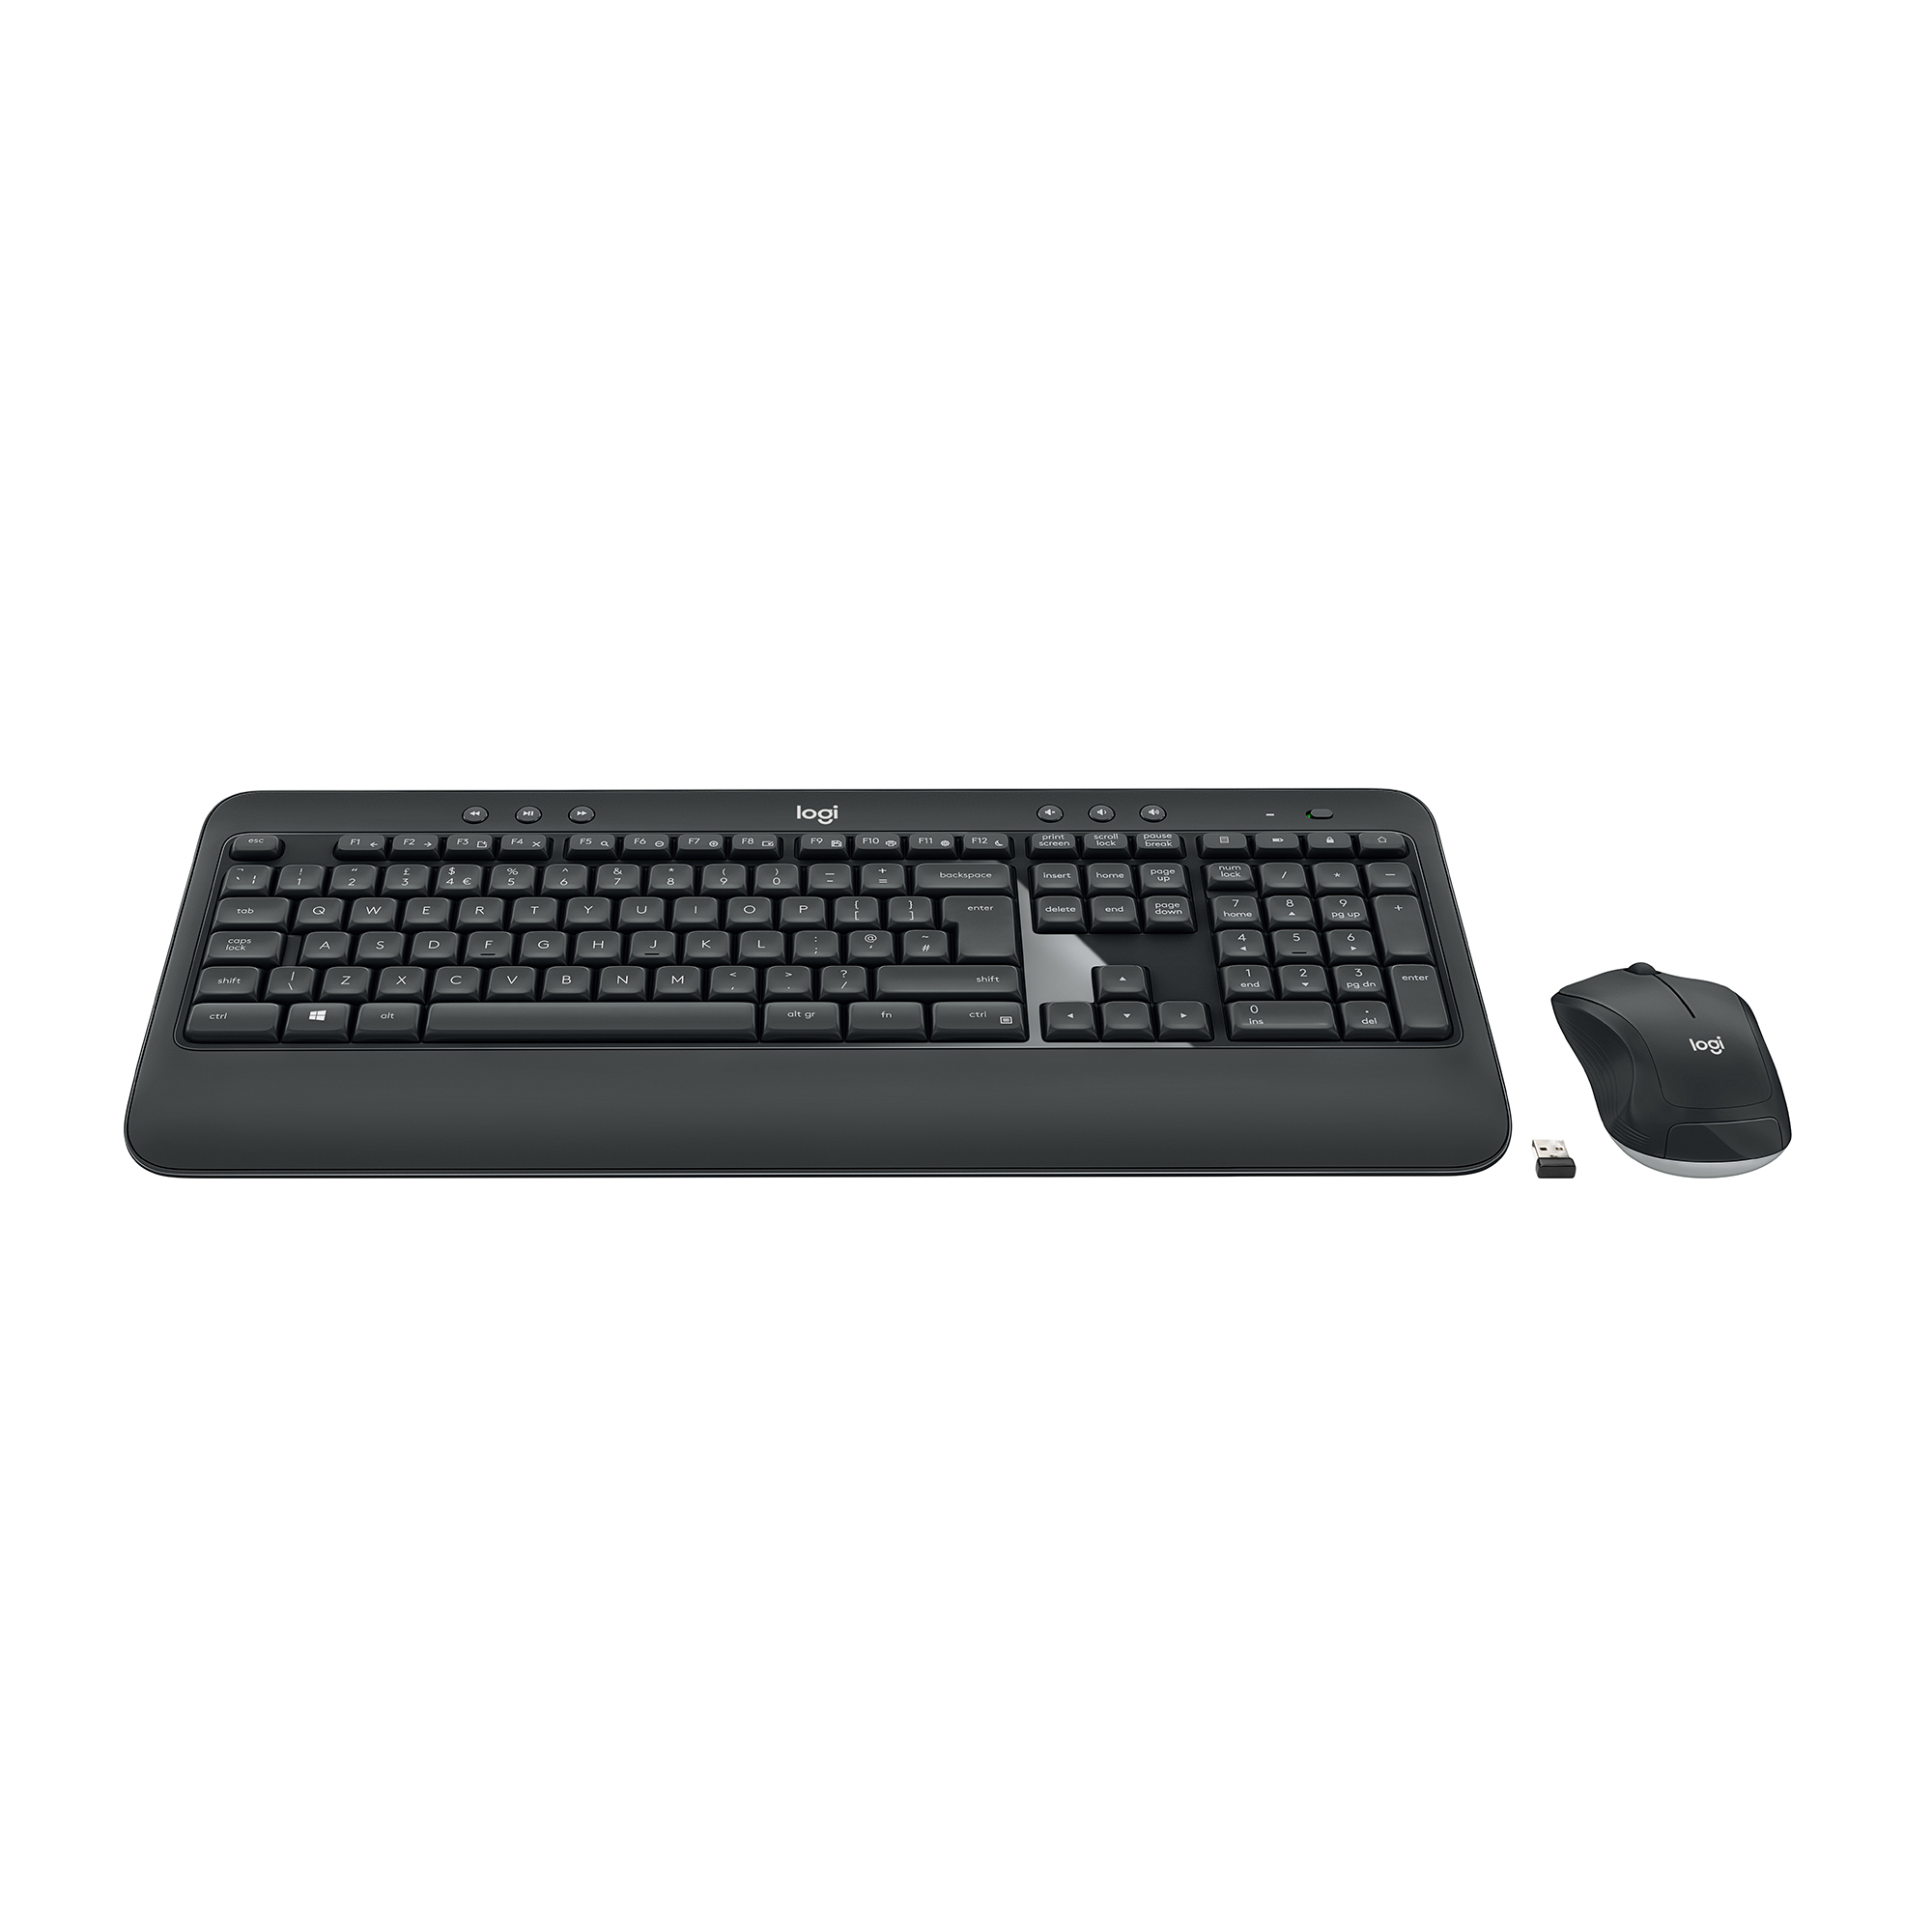 Logitech MK540 Wireless Keyboard And Mouse Set Black Ref 920-008684